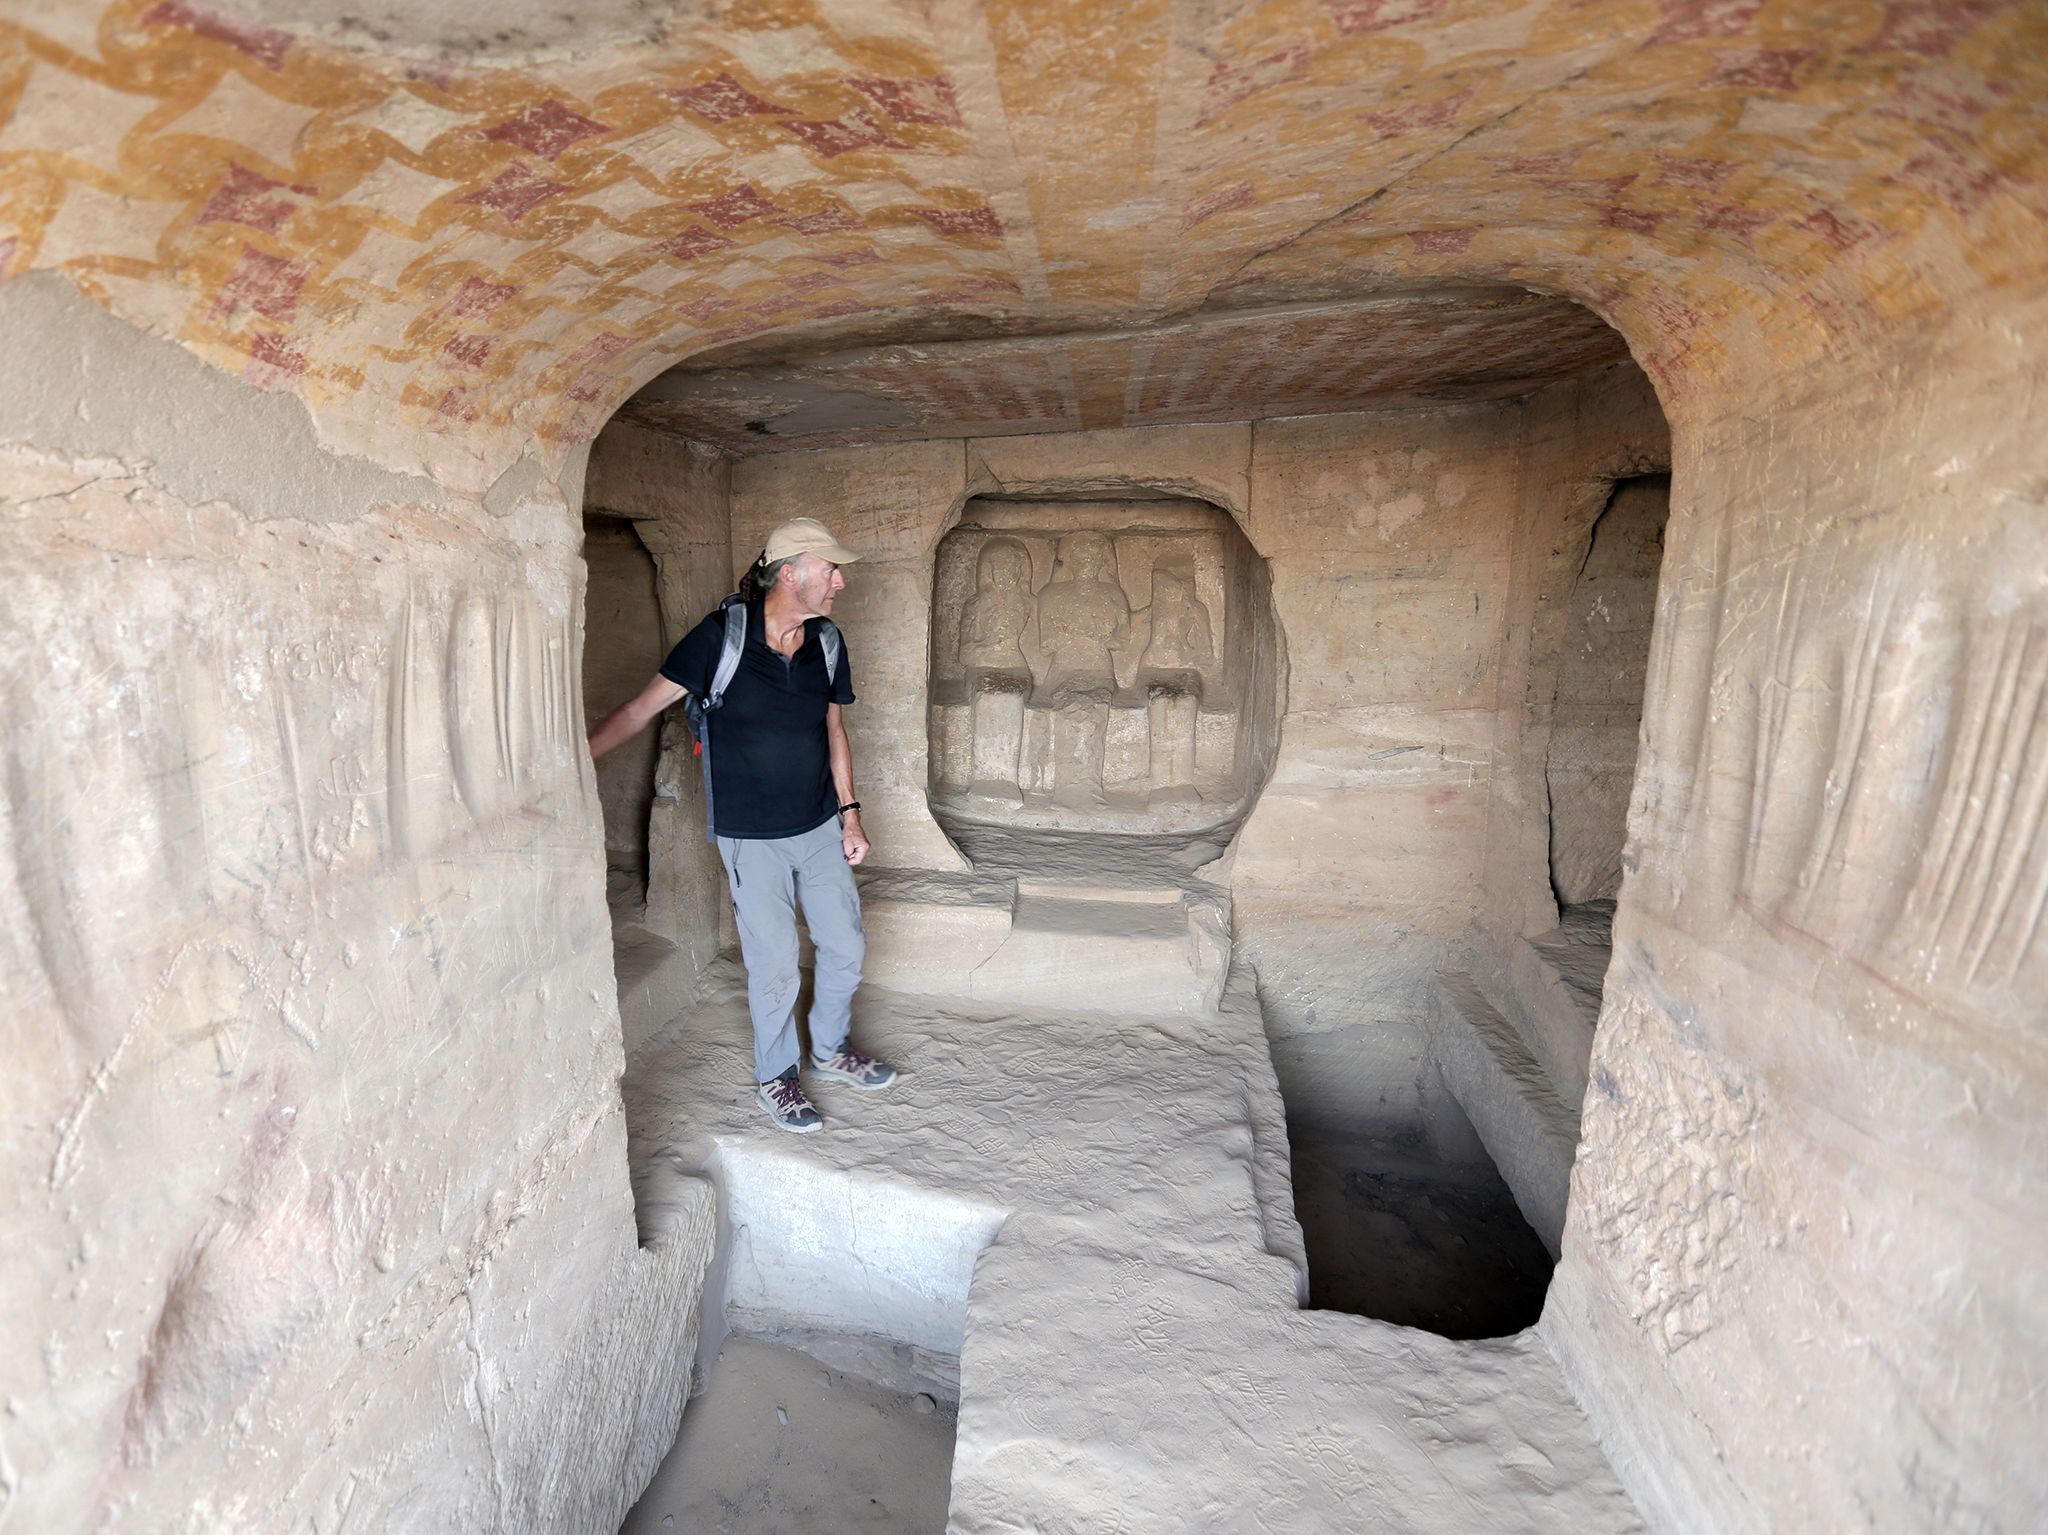 Ran Fiennes exploring a tomb at the historic site of Gebel el Sissela. This image is from Egypt... [Photo of the day - April 2019]